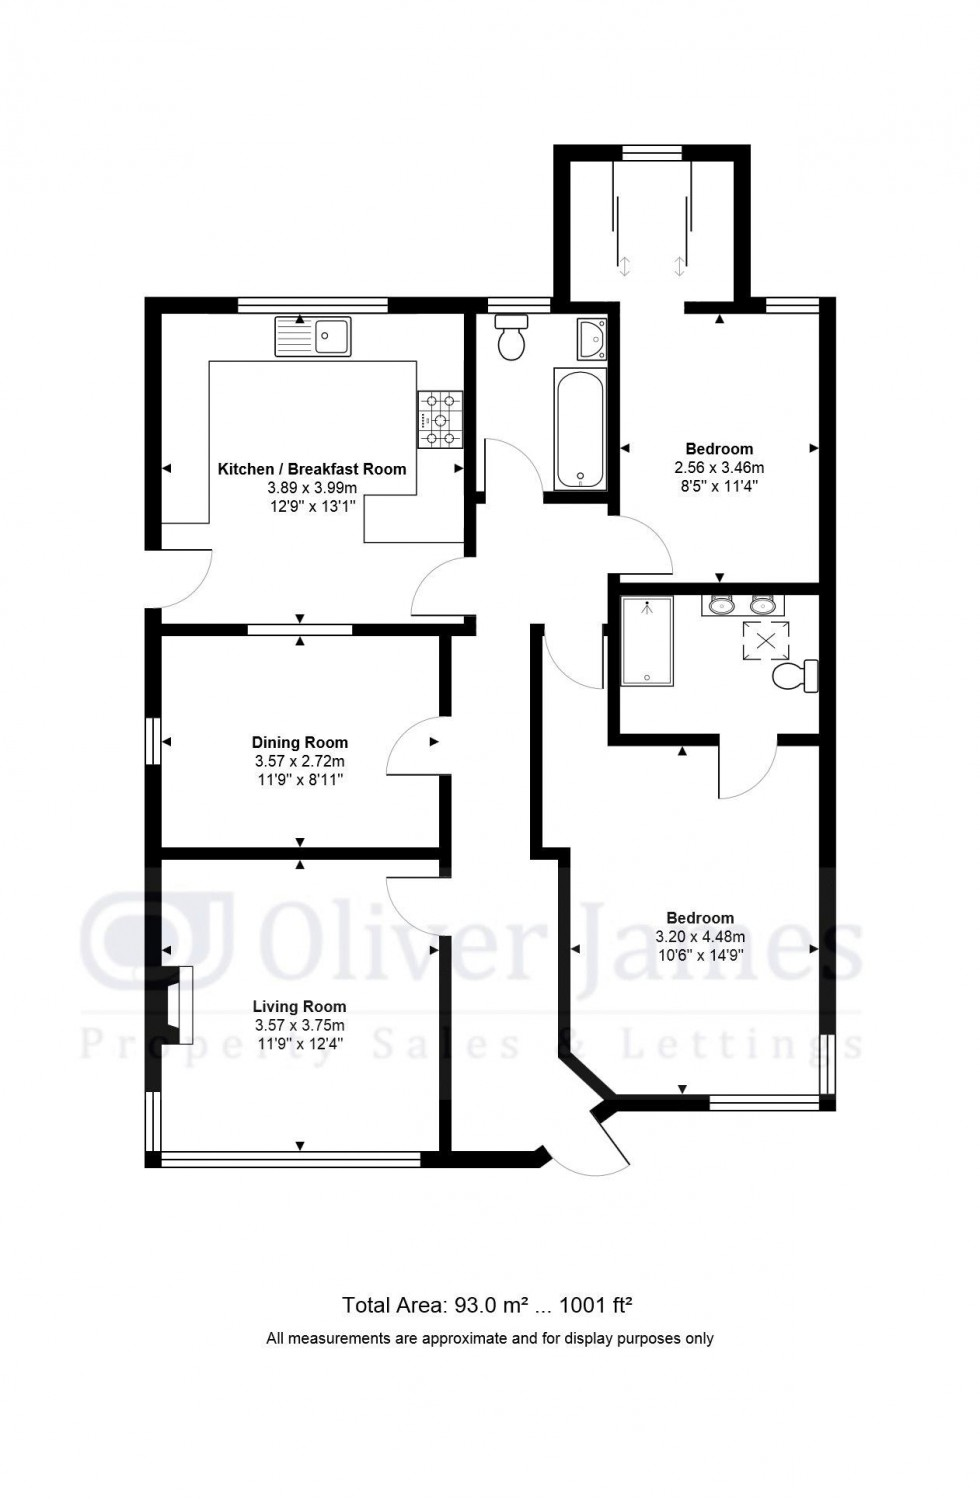 Floorplan for The Walks East, Huntingdon, Cambridgeshire.